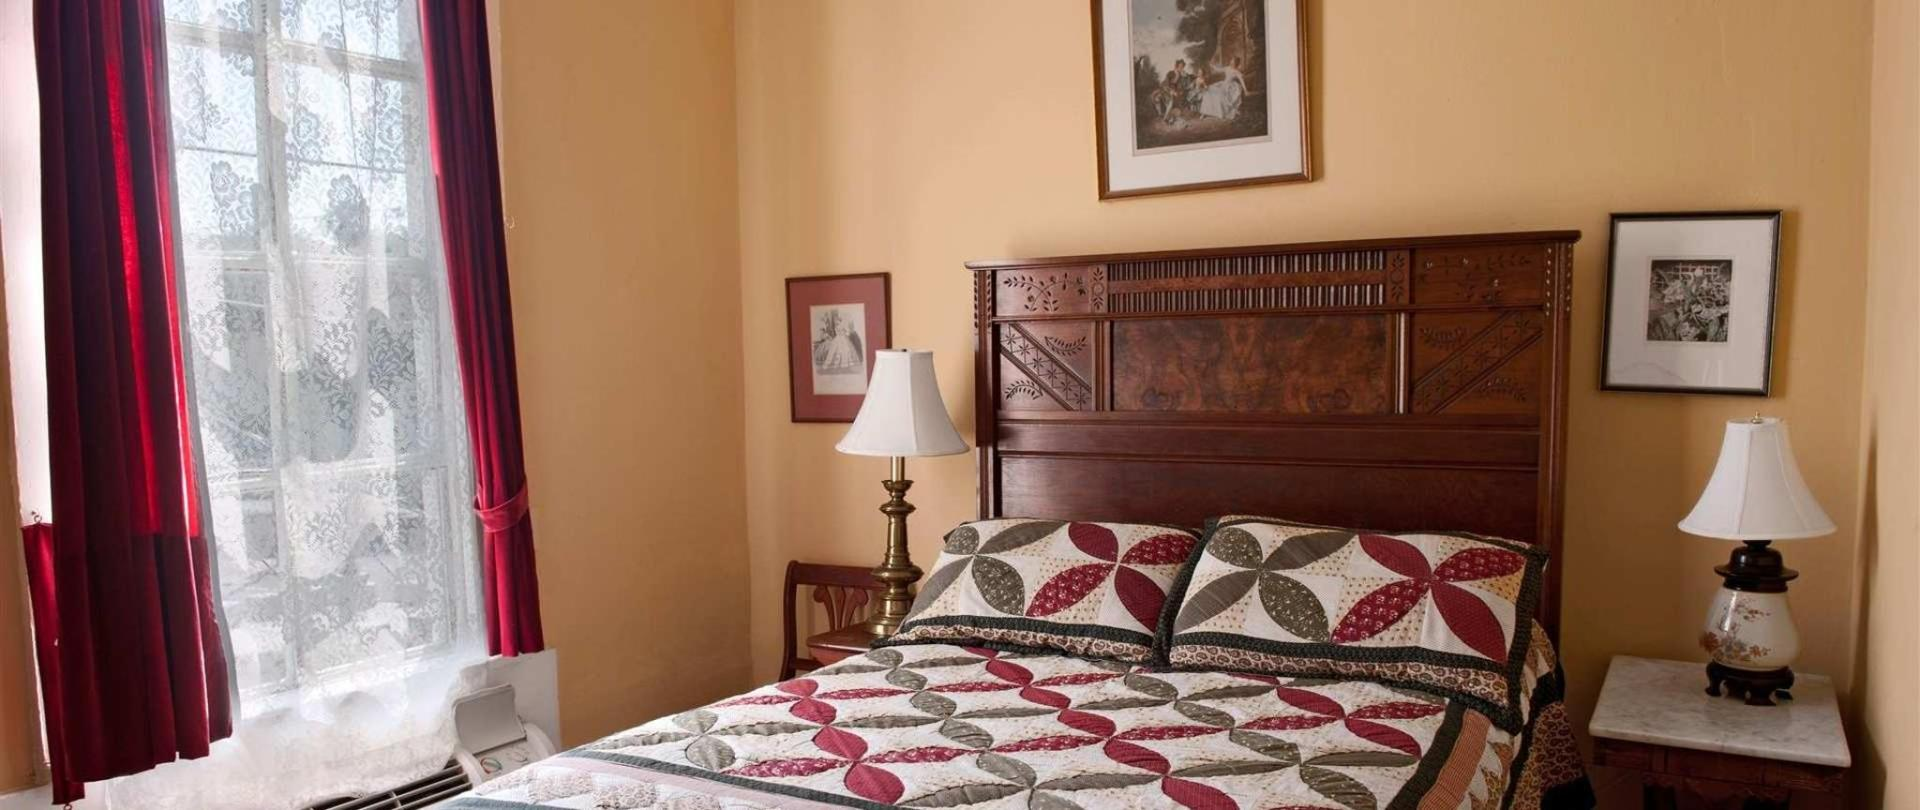 fairchild house bed & breakfast - new orleans - united states